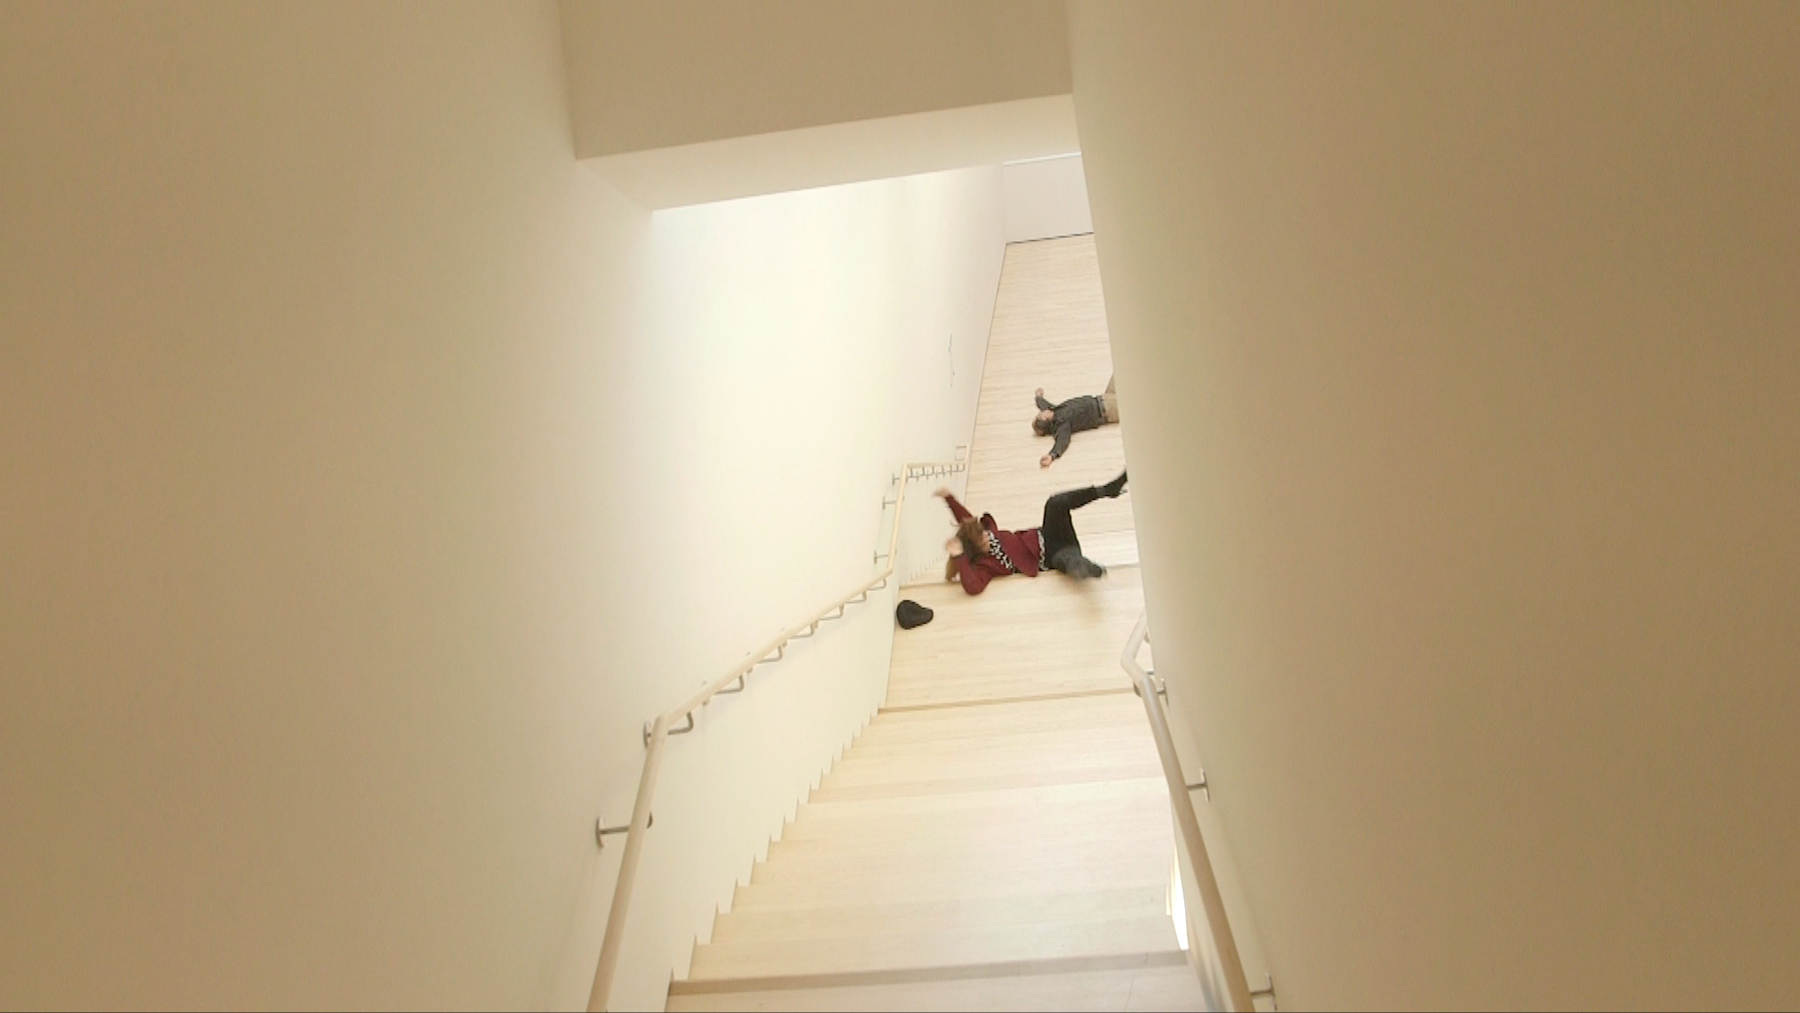 A woman falling down the stairs